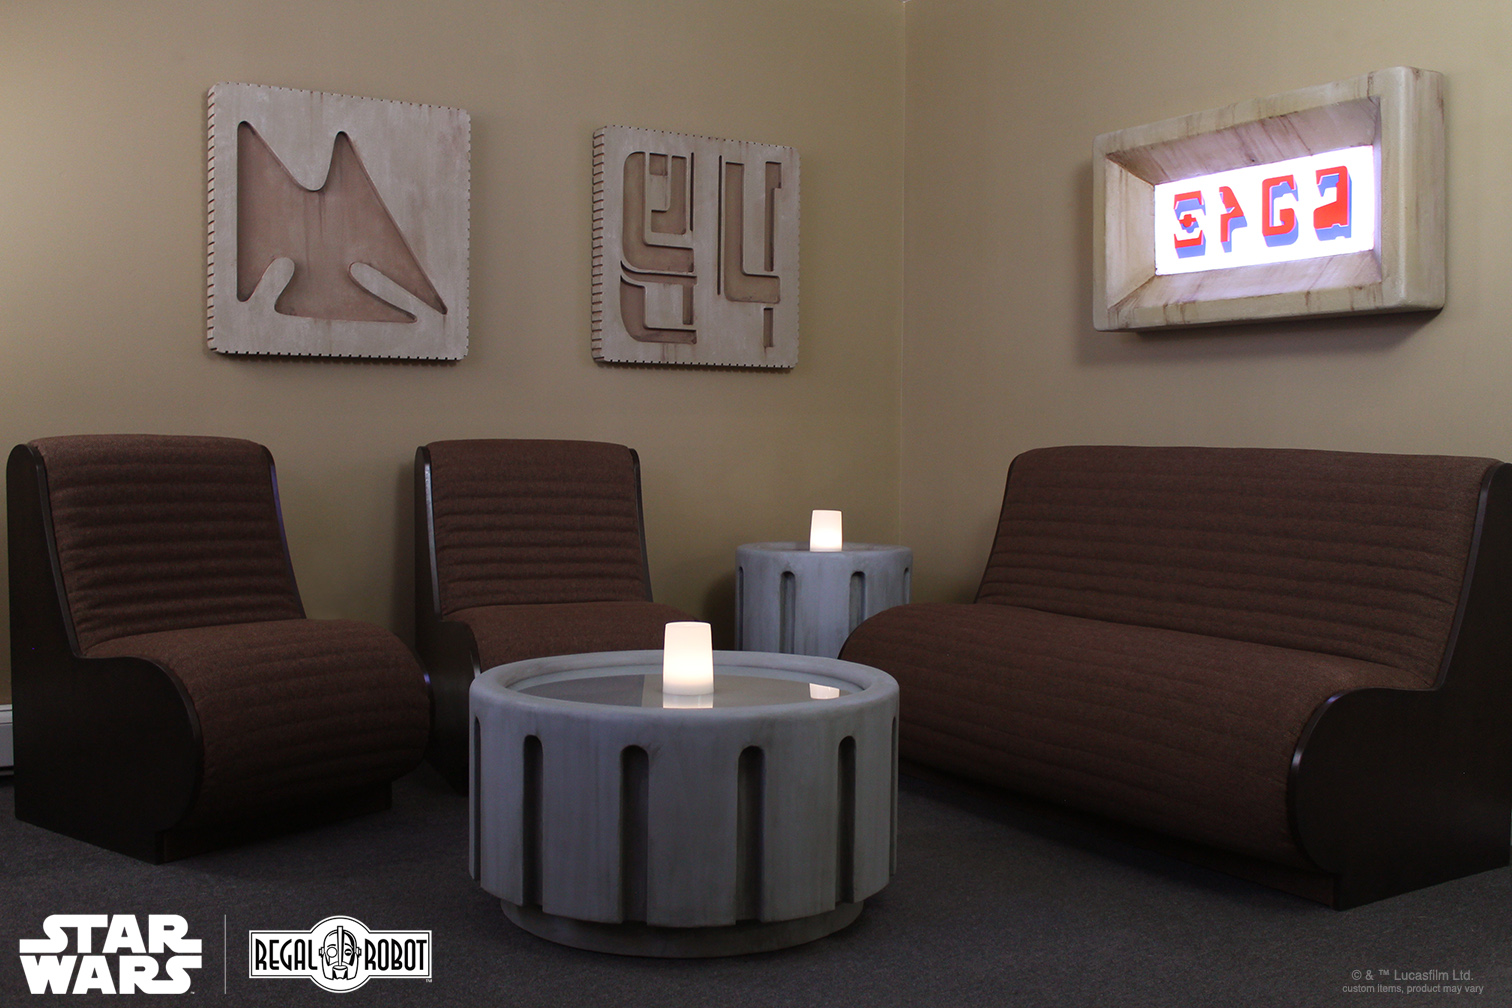 Regal Robot's cantina prop style sofa, chairs and decor